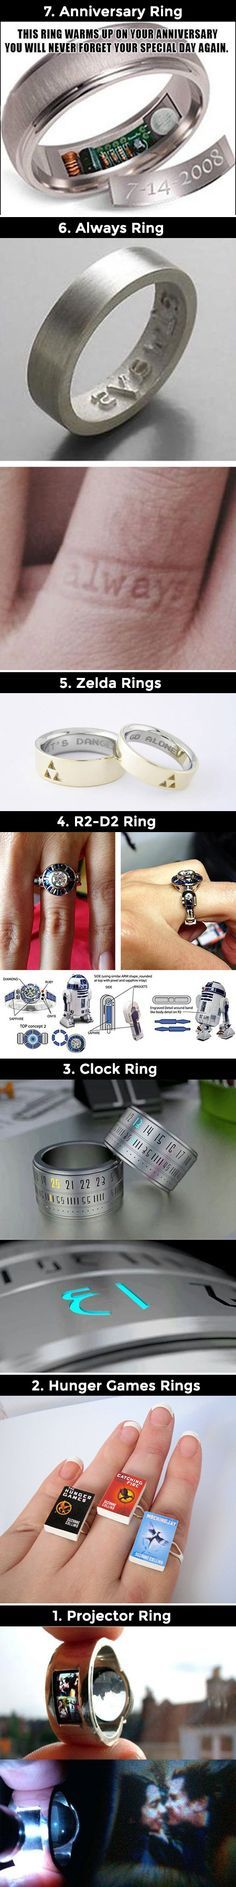 We have rounded up a batch of the geekiest rings you will ever see.haha